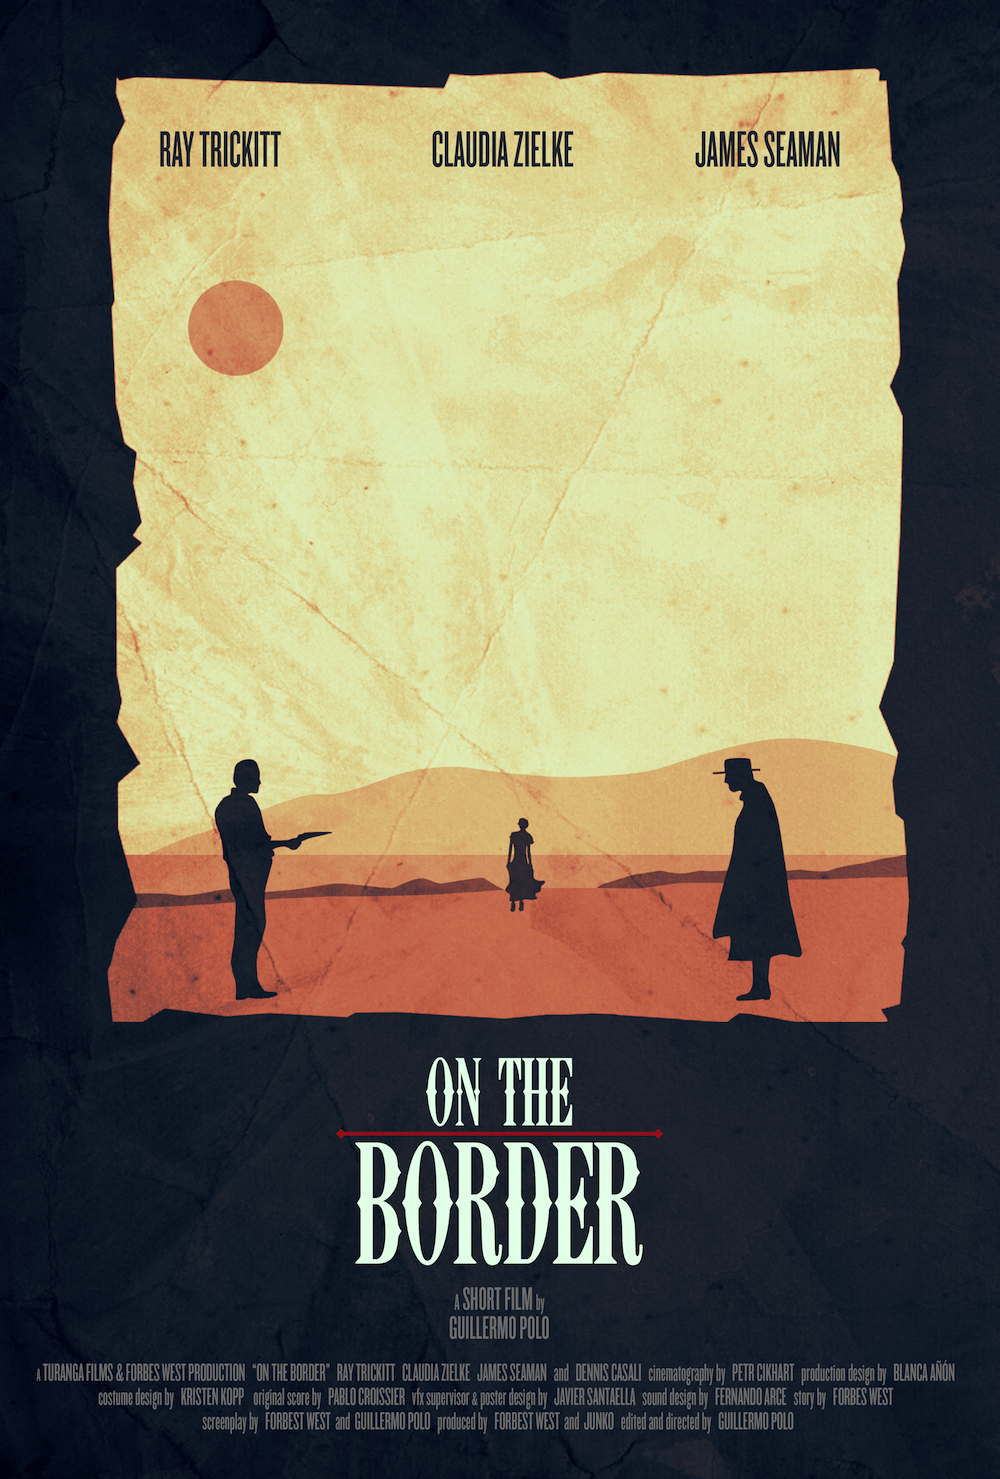 On the border directed by Guillermo Polo